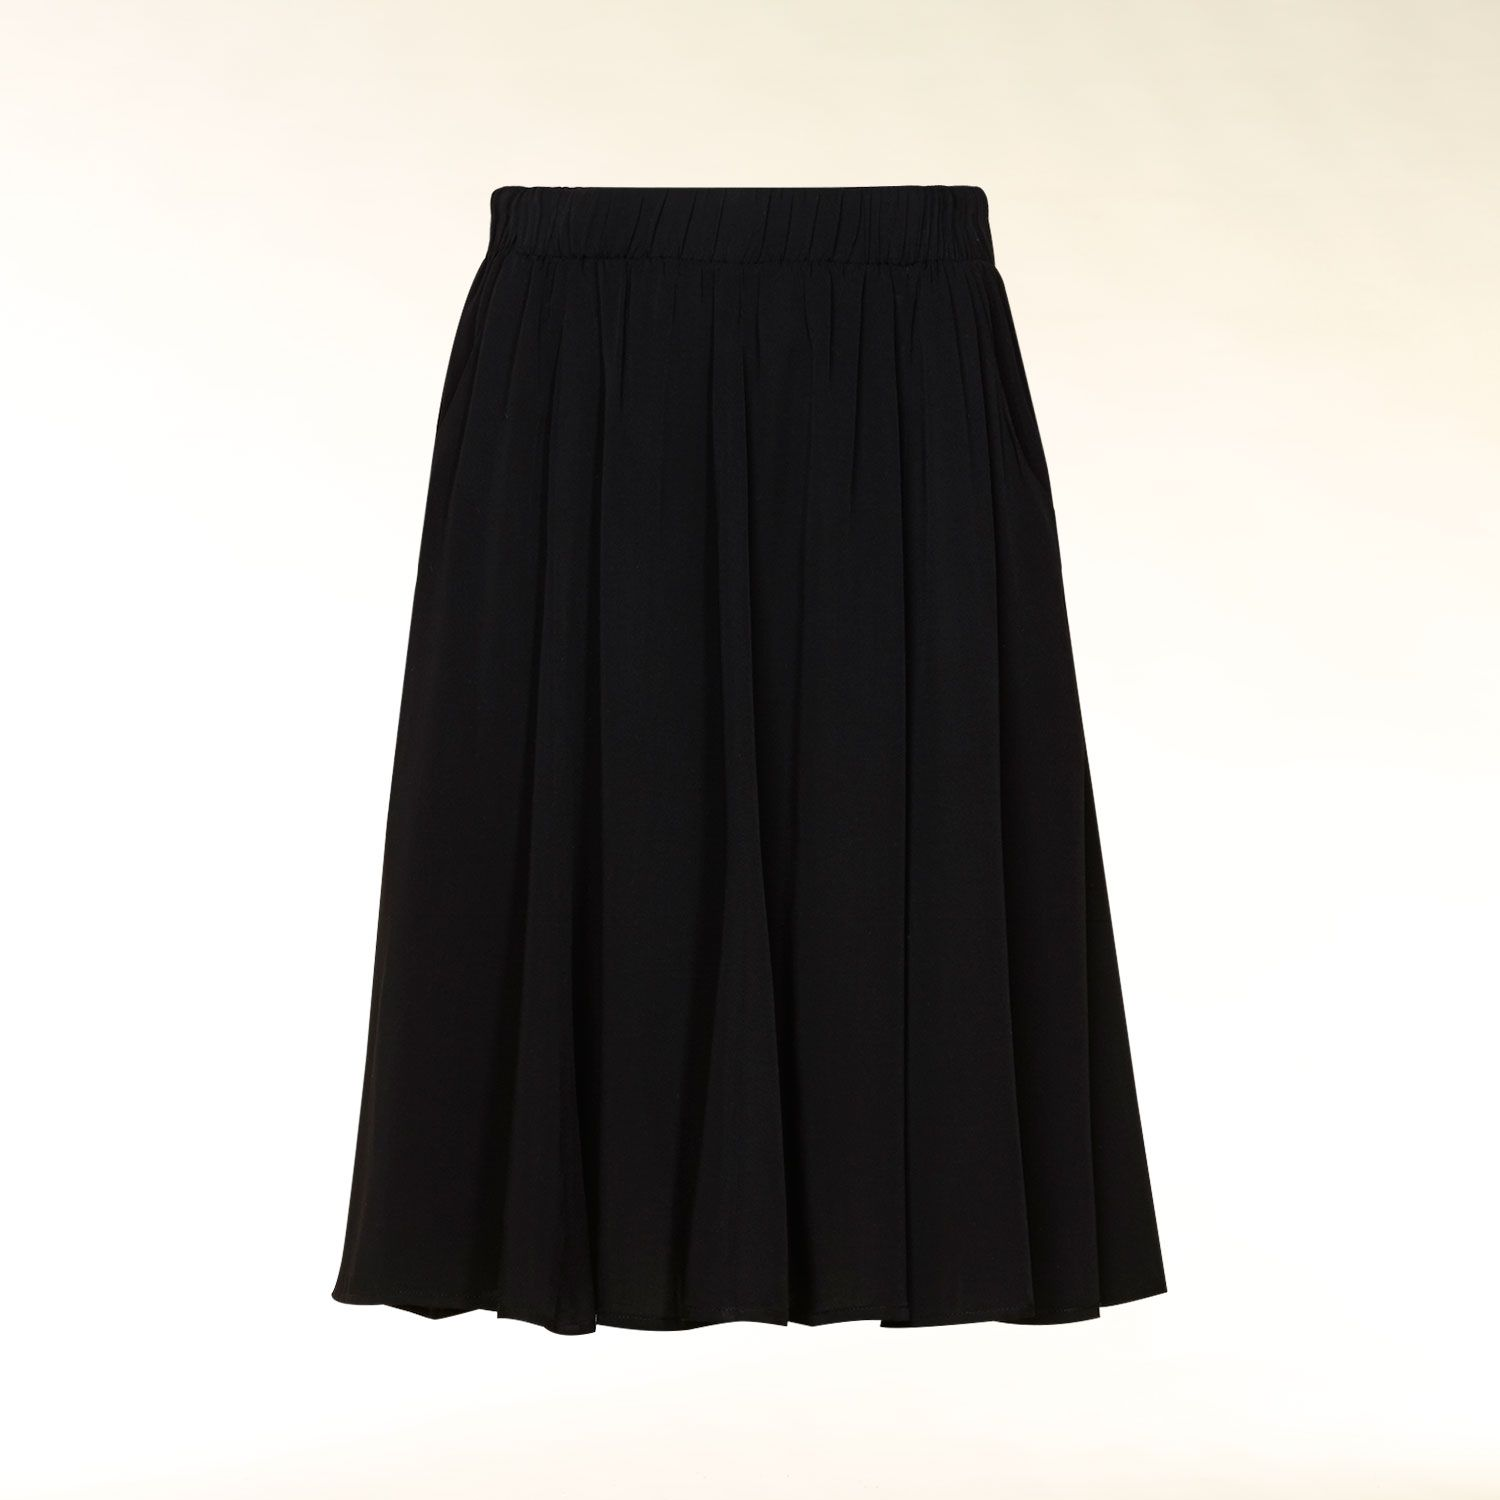 Pocket detail godet skirt